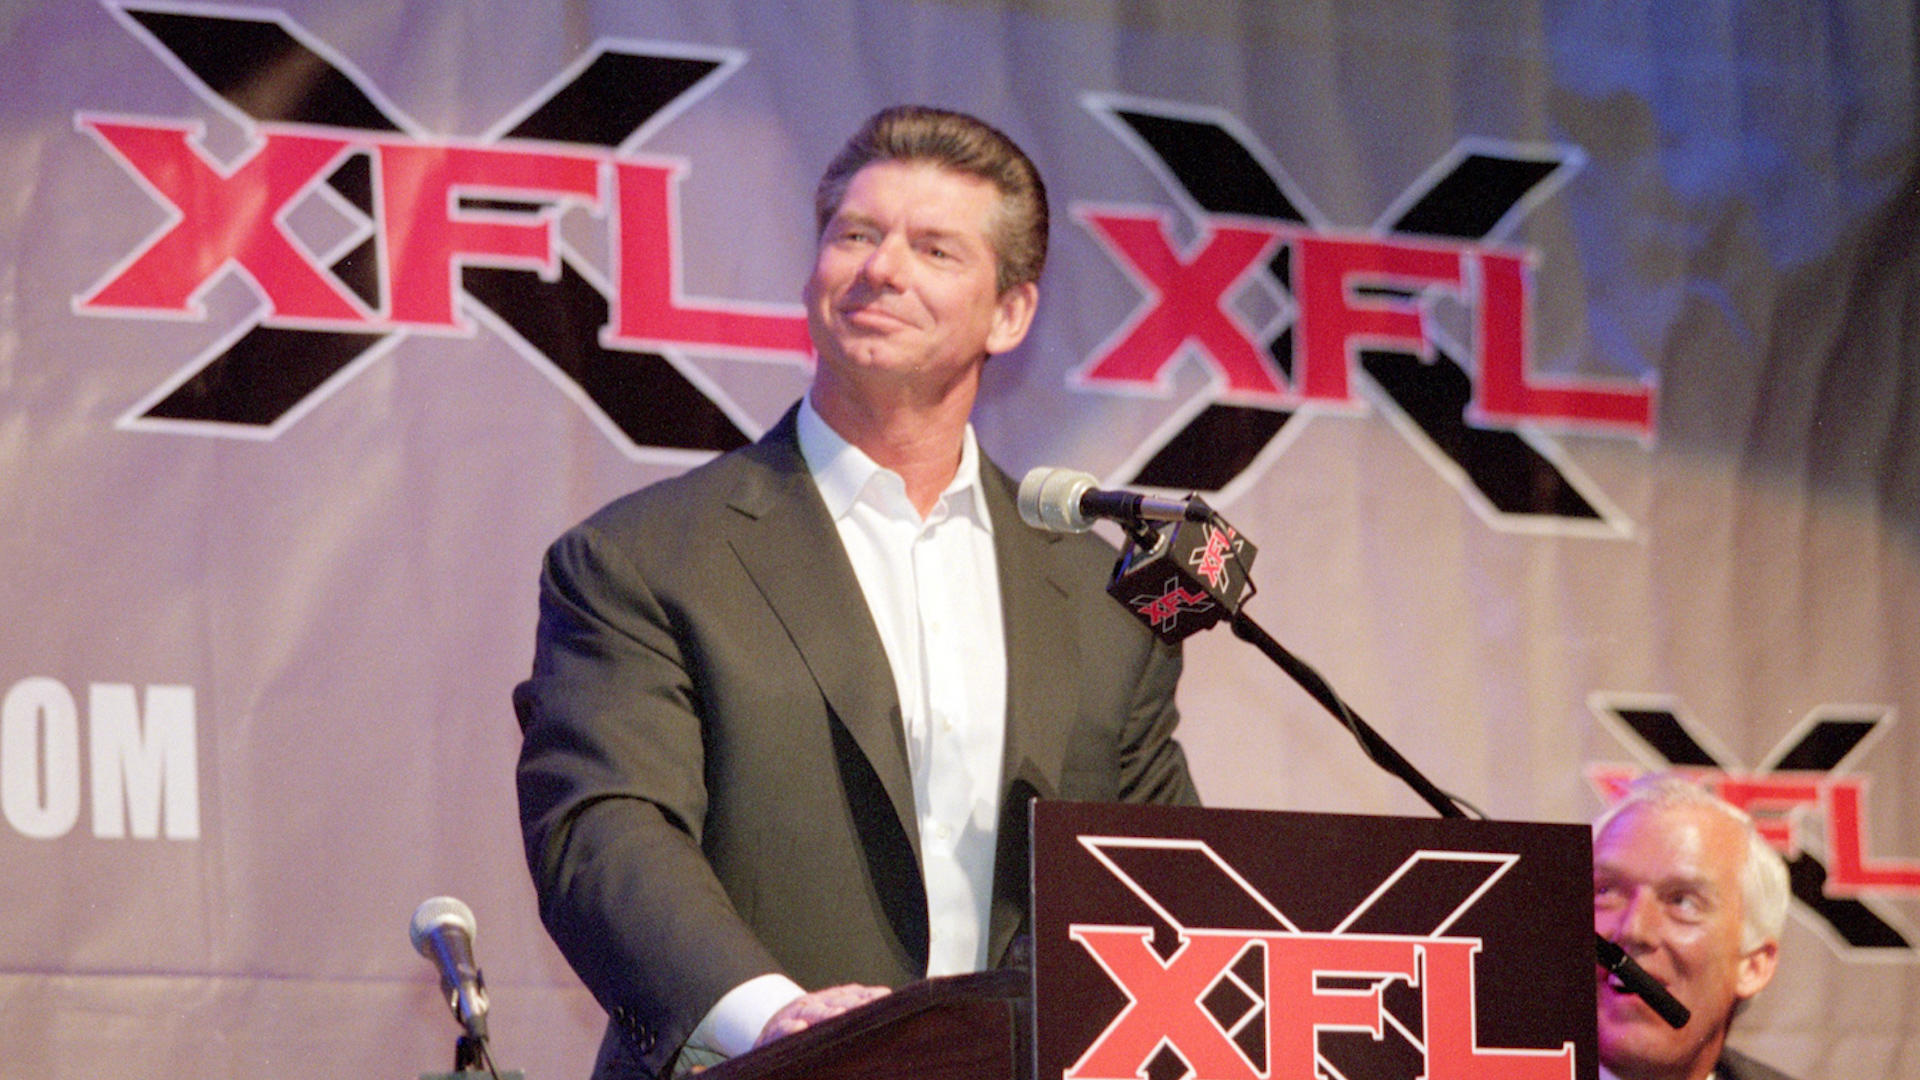 New XFL, new rules: 10 things to know about Vince McMahon's rebooted league